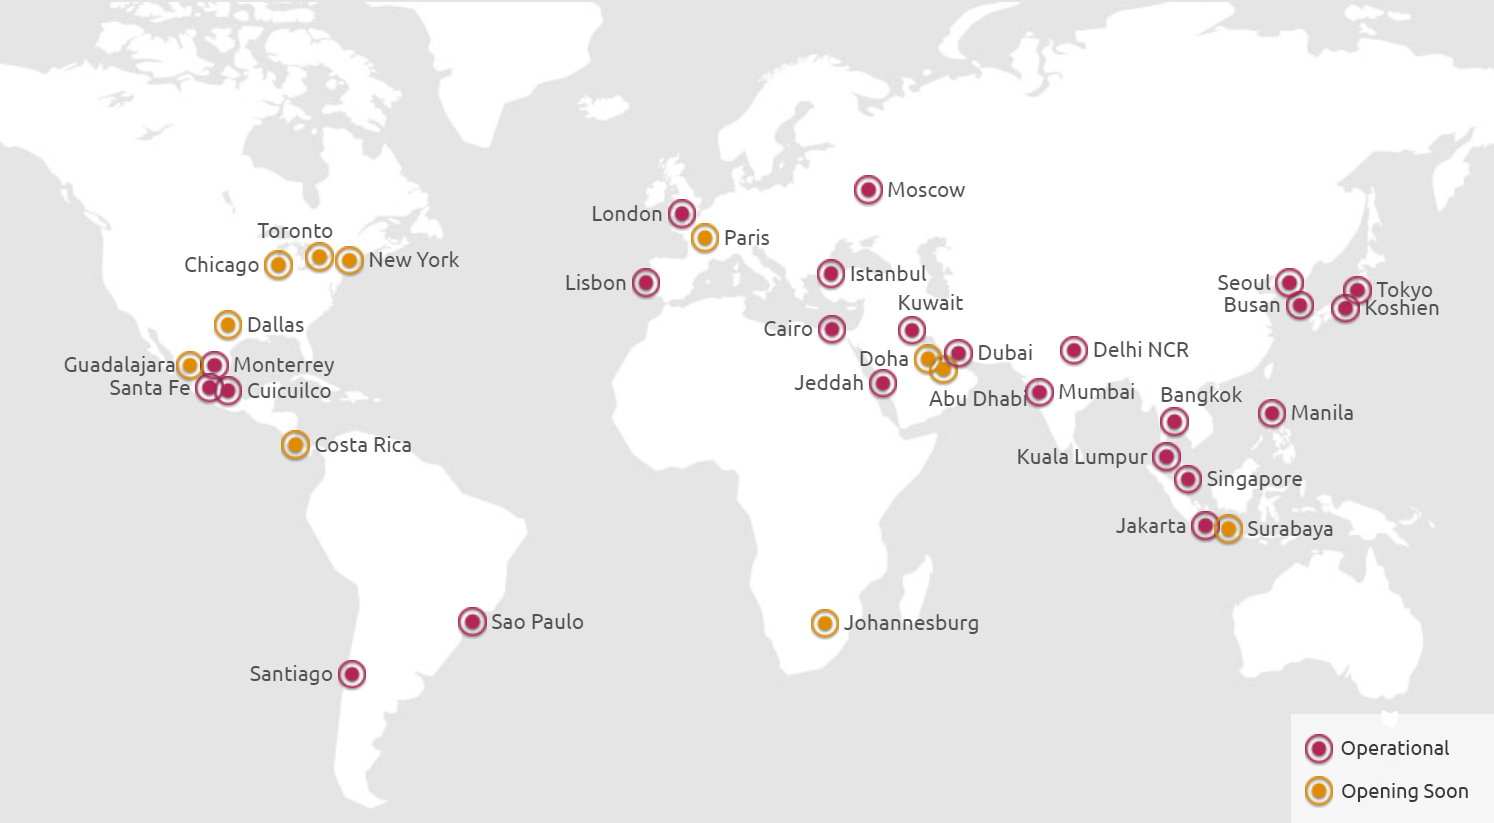 KidZania World Map